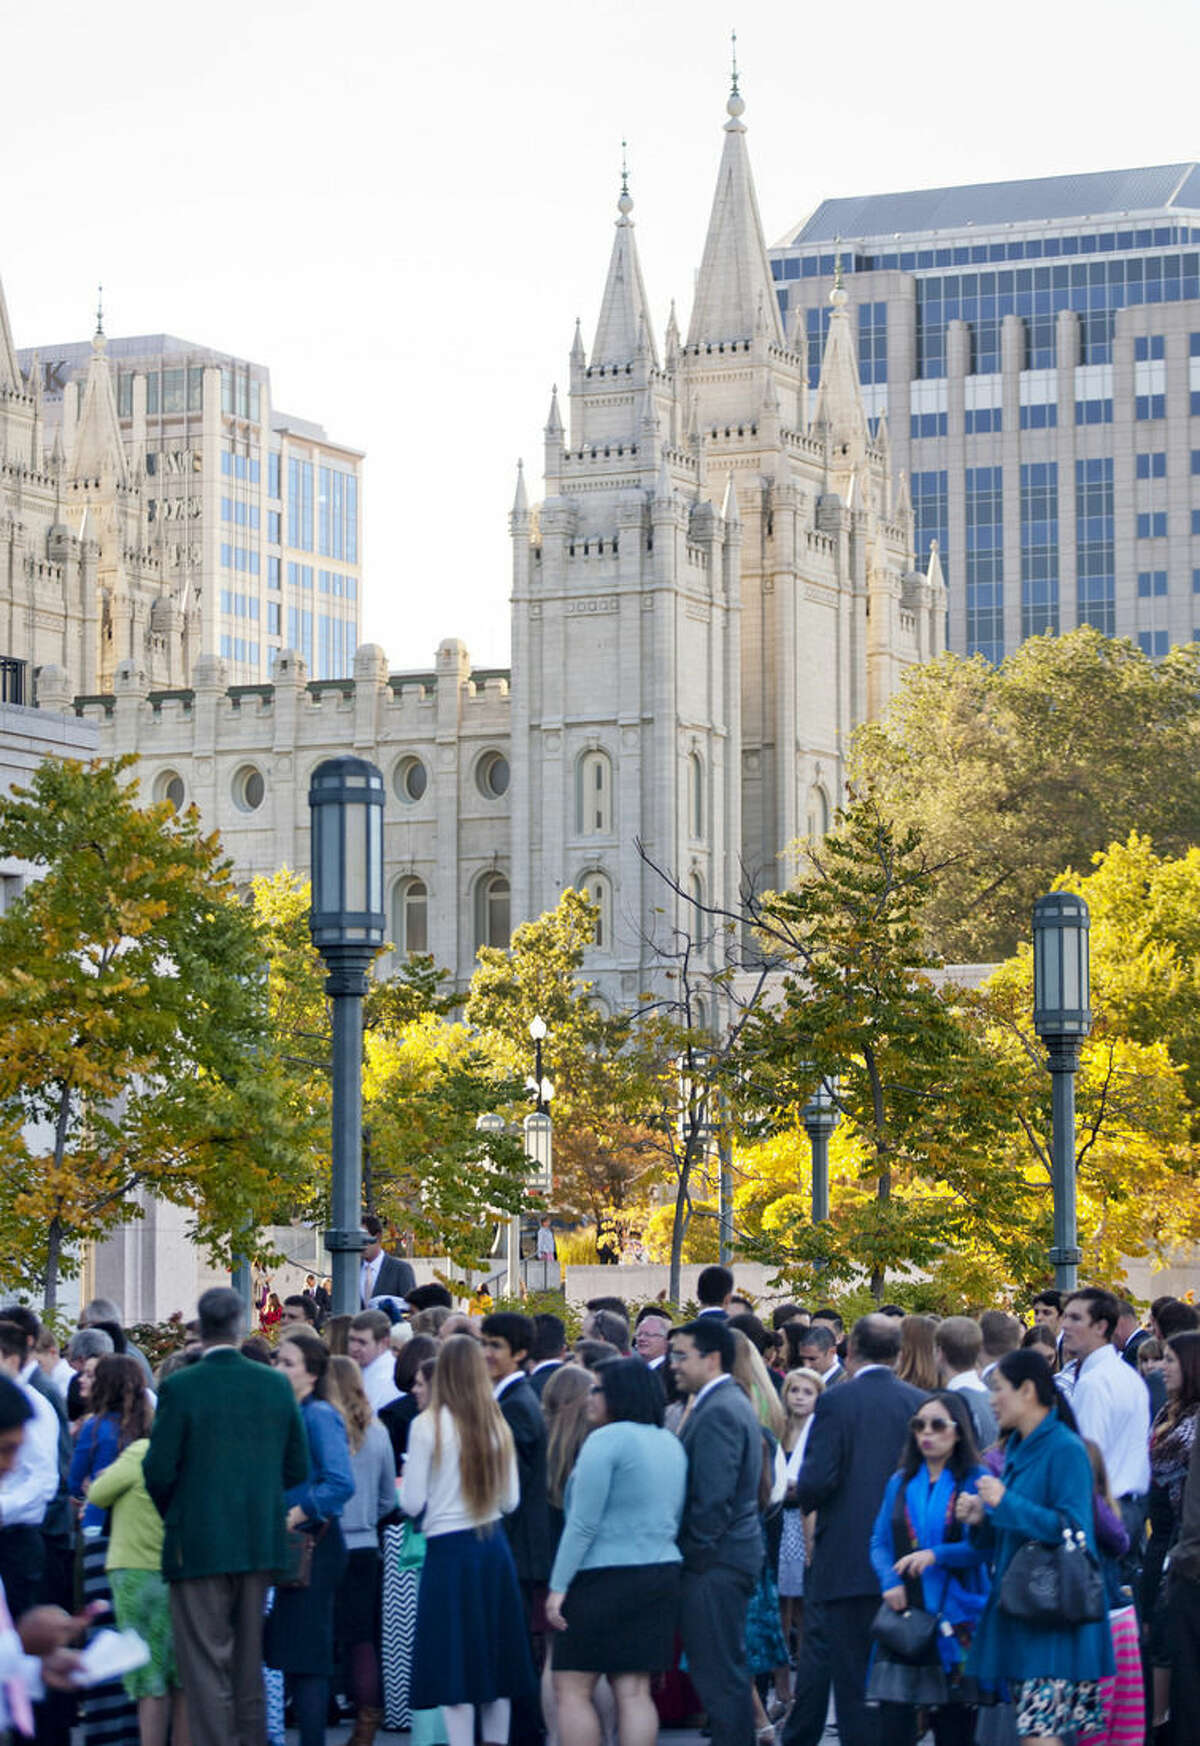 People wait in line outside of the The Church of Jesus Christ of Latter-day Saints' Conference Center with the Salt Lake Temple in the background to before the opening session of the two-day Mormon church conference Saturday, Oct. 4, 2014, in Salt Lake City. Chi Hong Wong, a Mormon leader from Hong Kong delivered a speech in Mandarin on Saturday in what marked the first time in the history of the faith's signature conference that an address was delivered in a language other than English. (AP Photo/Kim Raff)